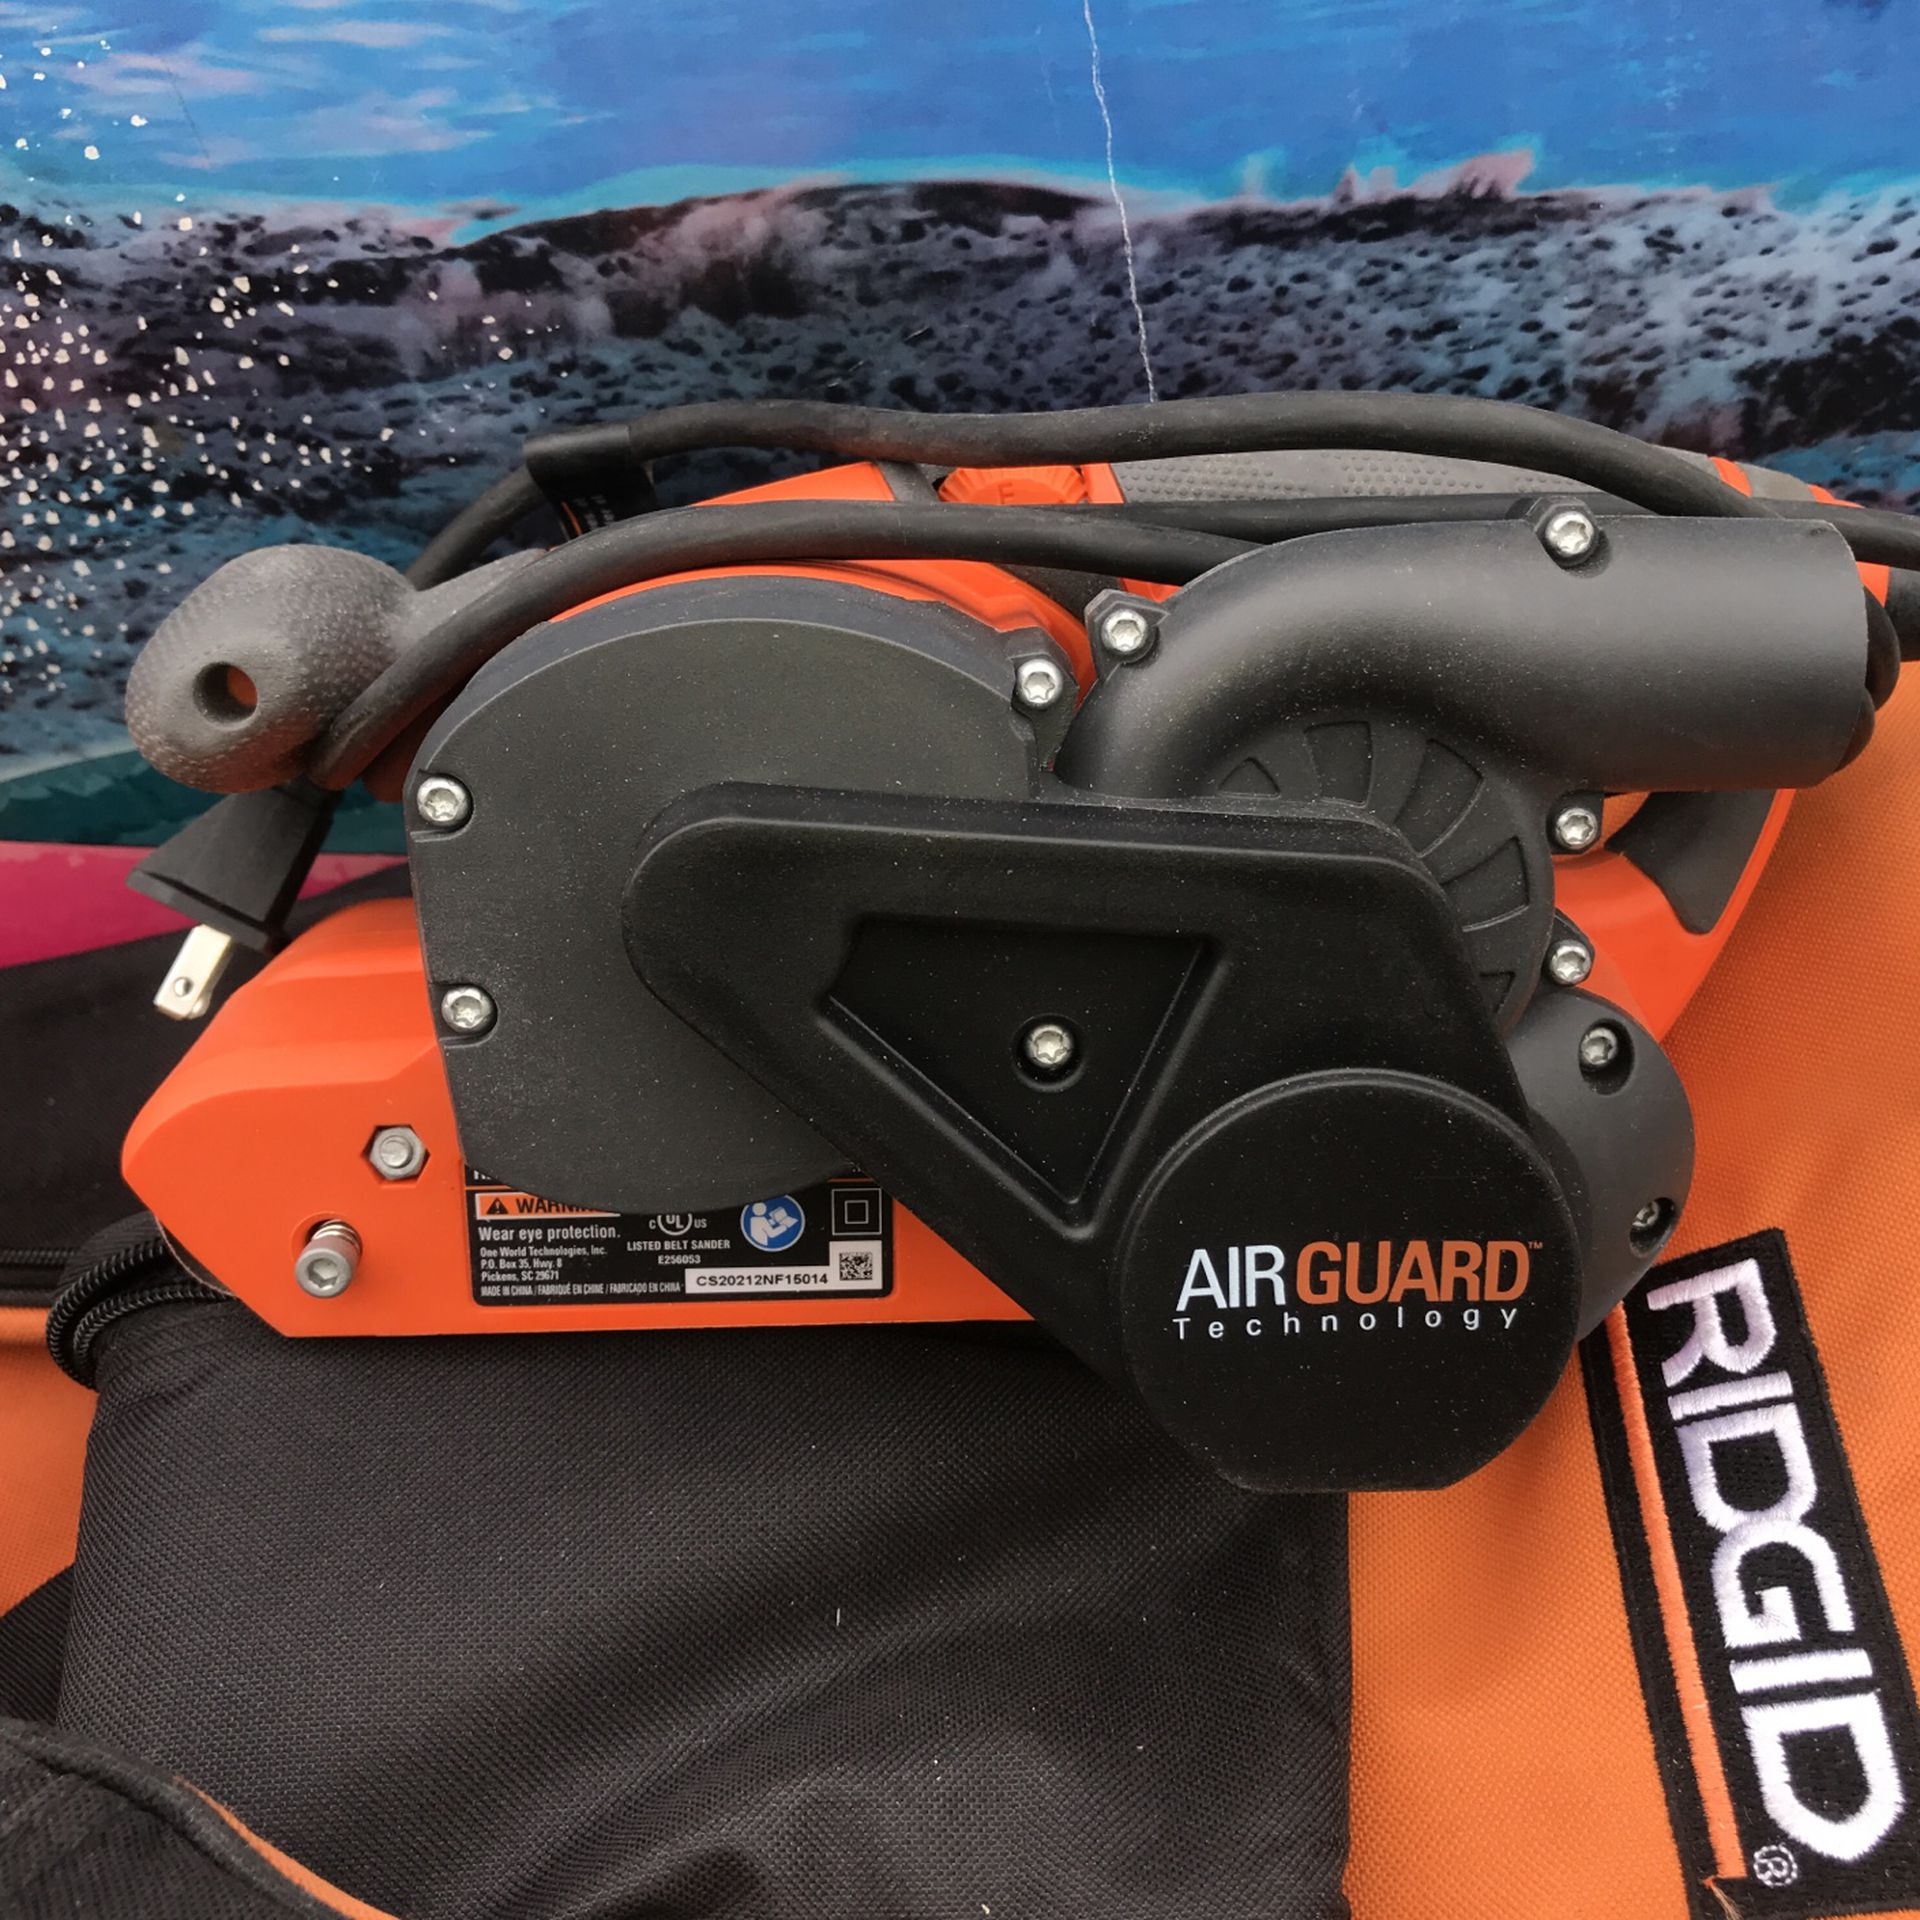 RIDGID 6.5 Amp Corded 3 in. x 18 in. Heavy-Duty Variable Speed Belt Sander with AIRGUARD Technology